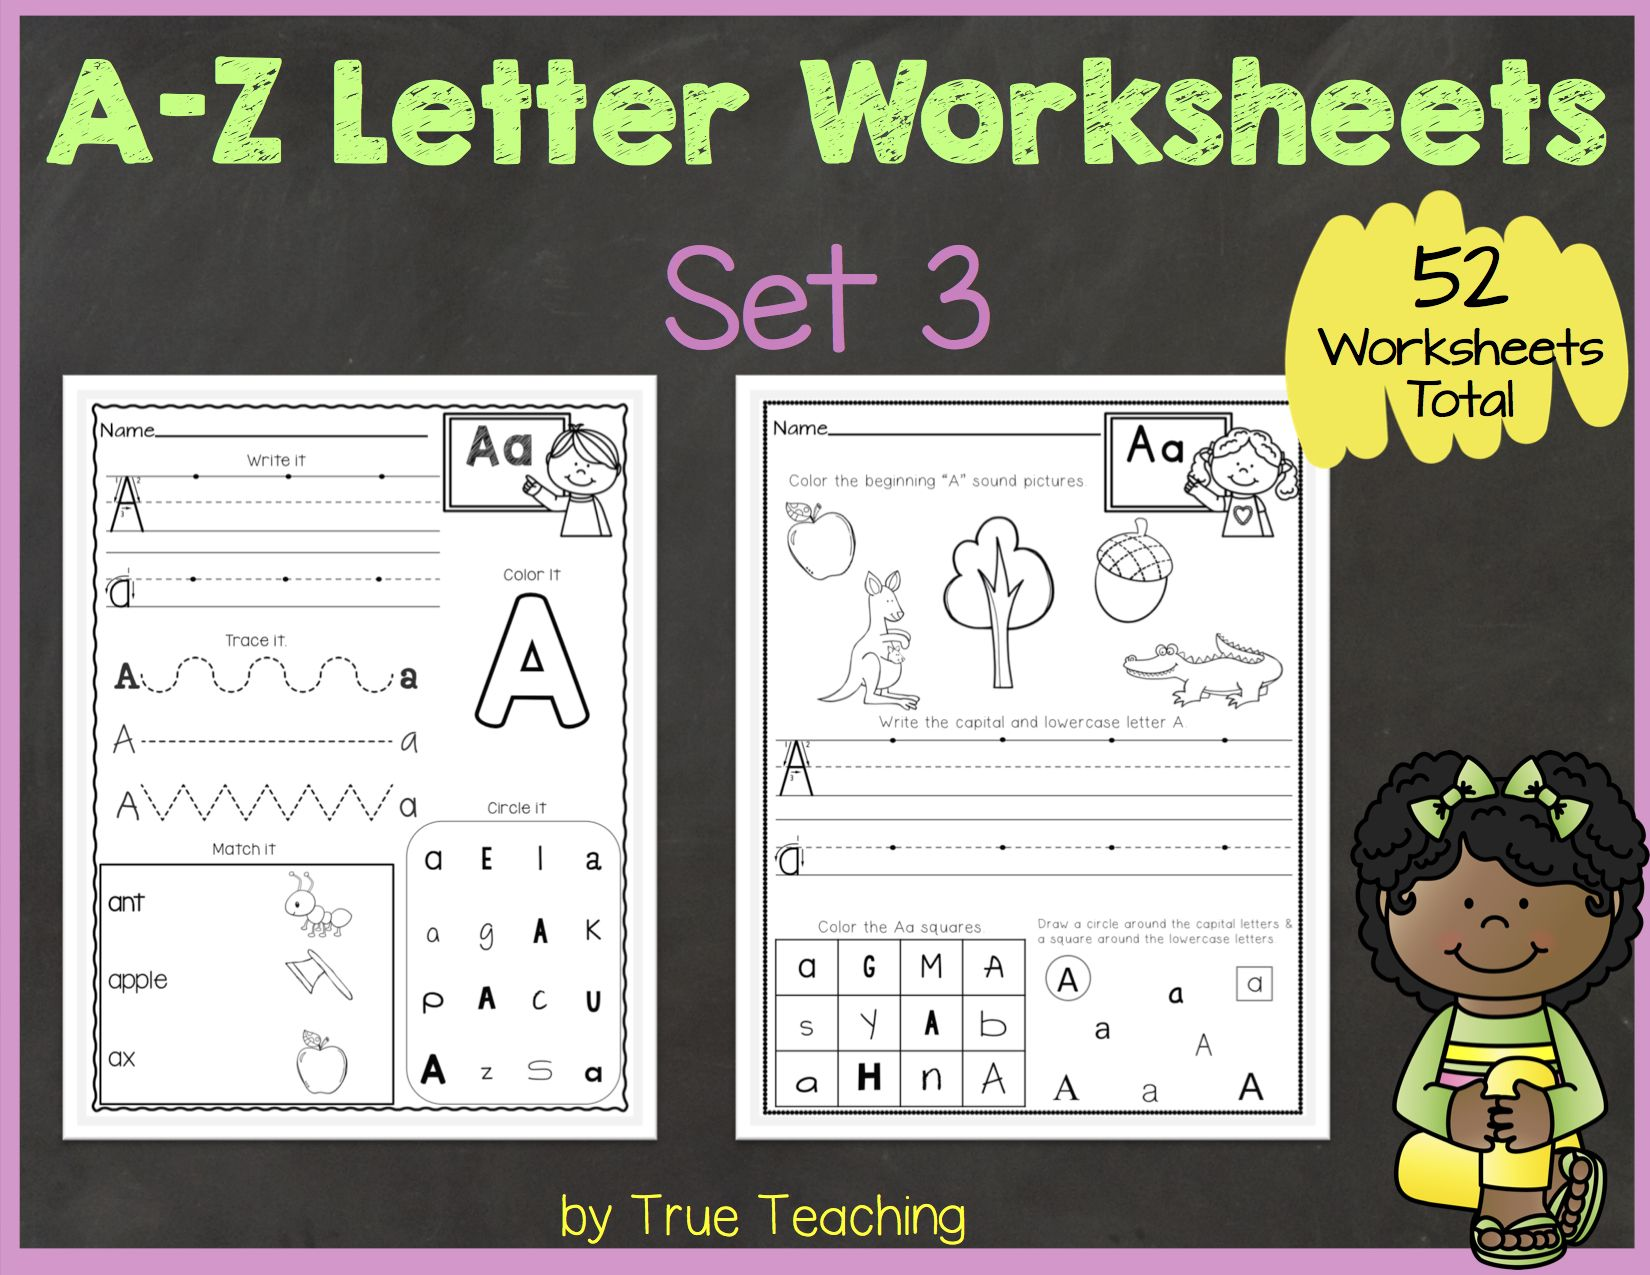 worksheet Alphabet Worksheet Set Letters Az a z letter worksheets set 3 and by true teaching